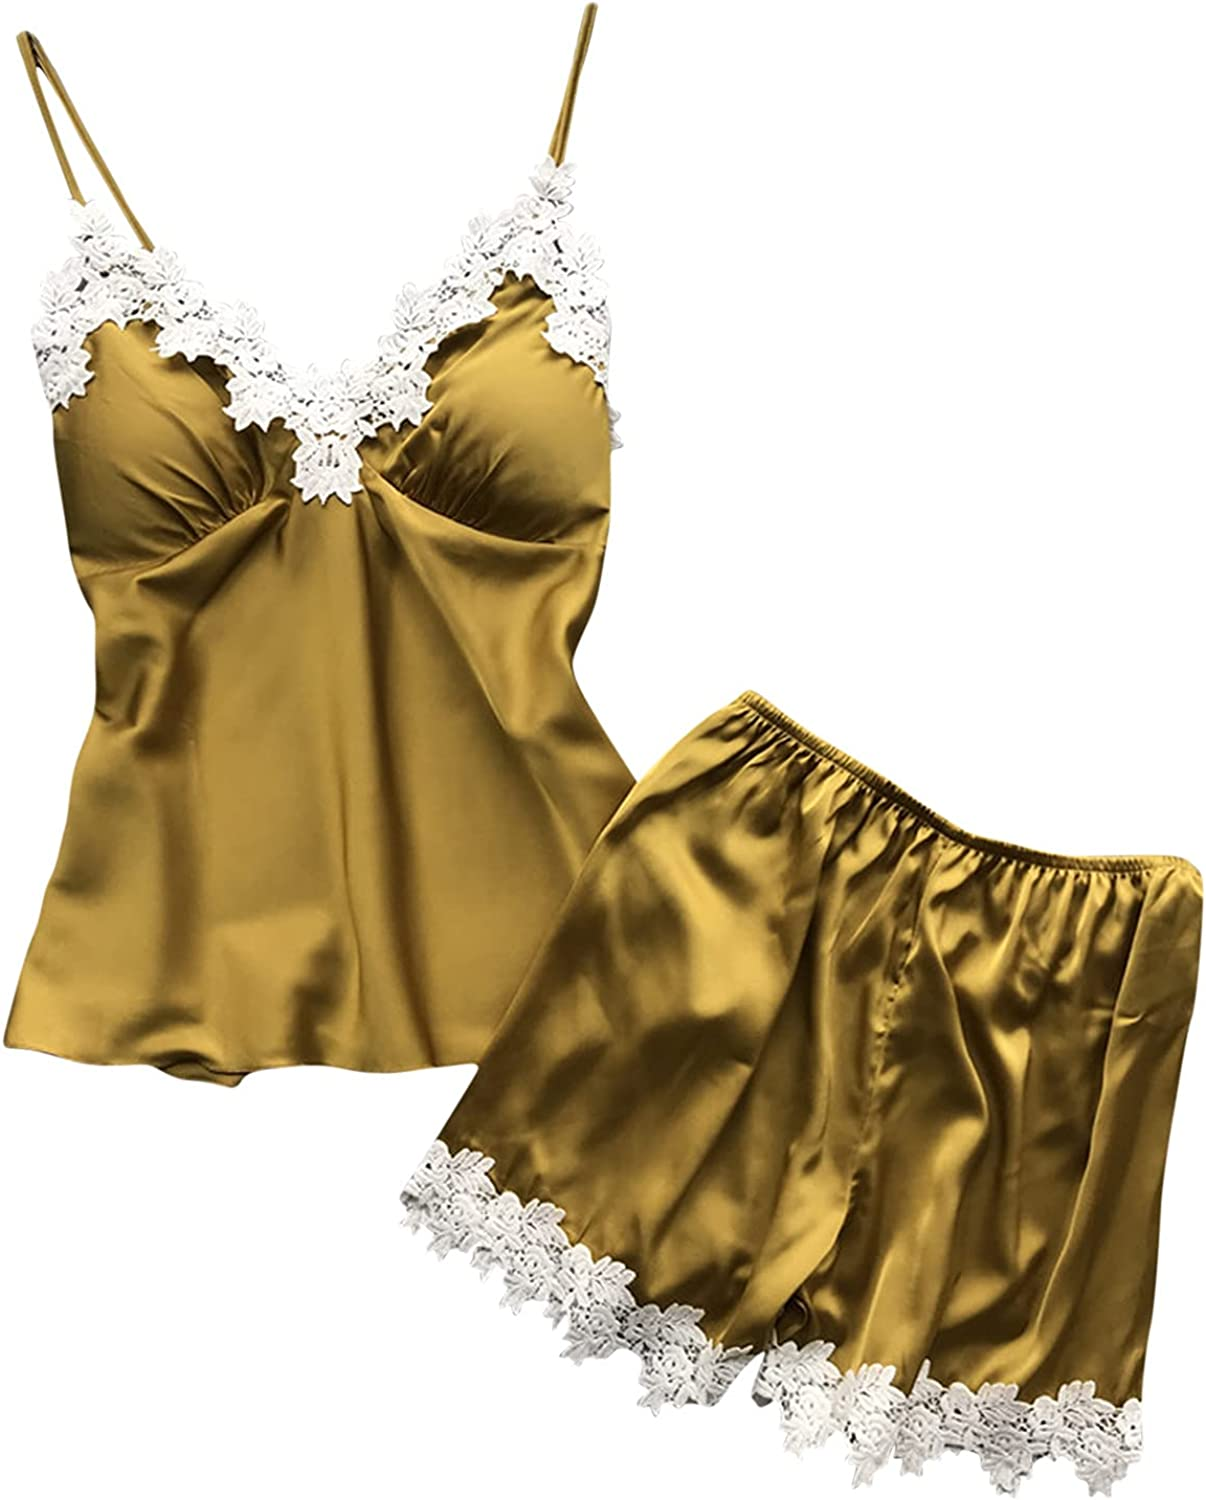 Women's Sleepwear Sexy Satin Pajamas Fashion Lace Splice Cami Tops Comfy Shorts Set Babydoll Chest Pad Lingerie Suits